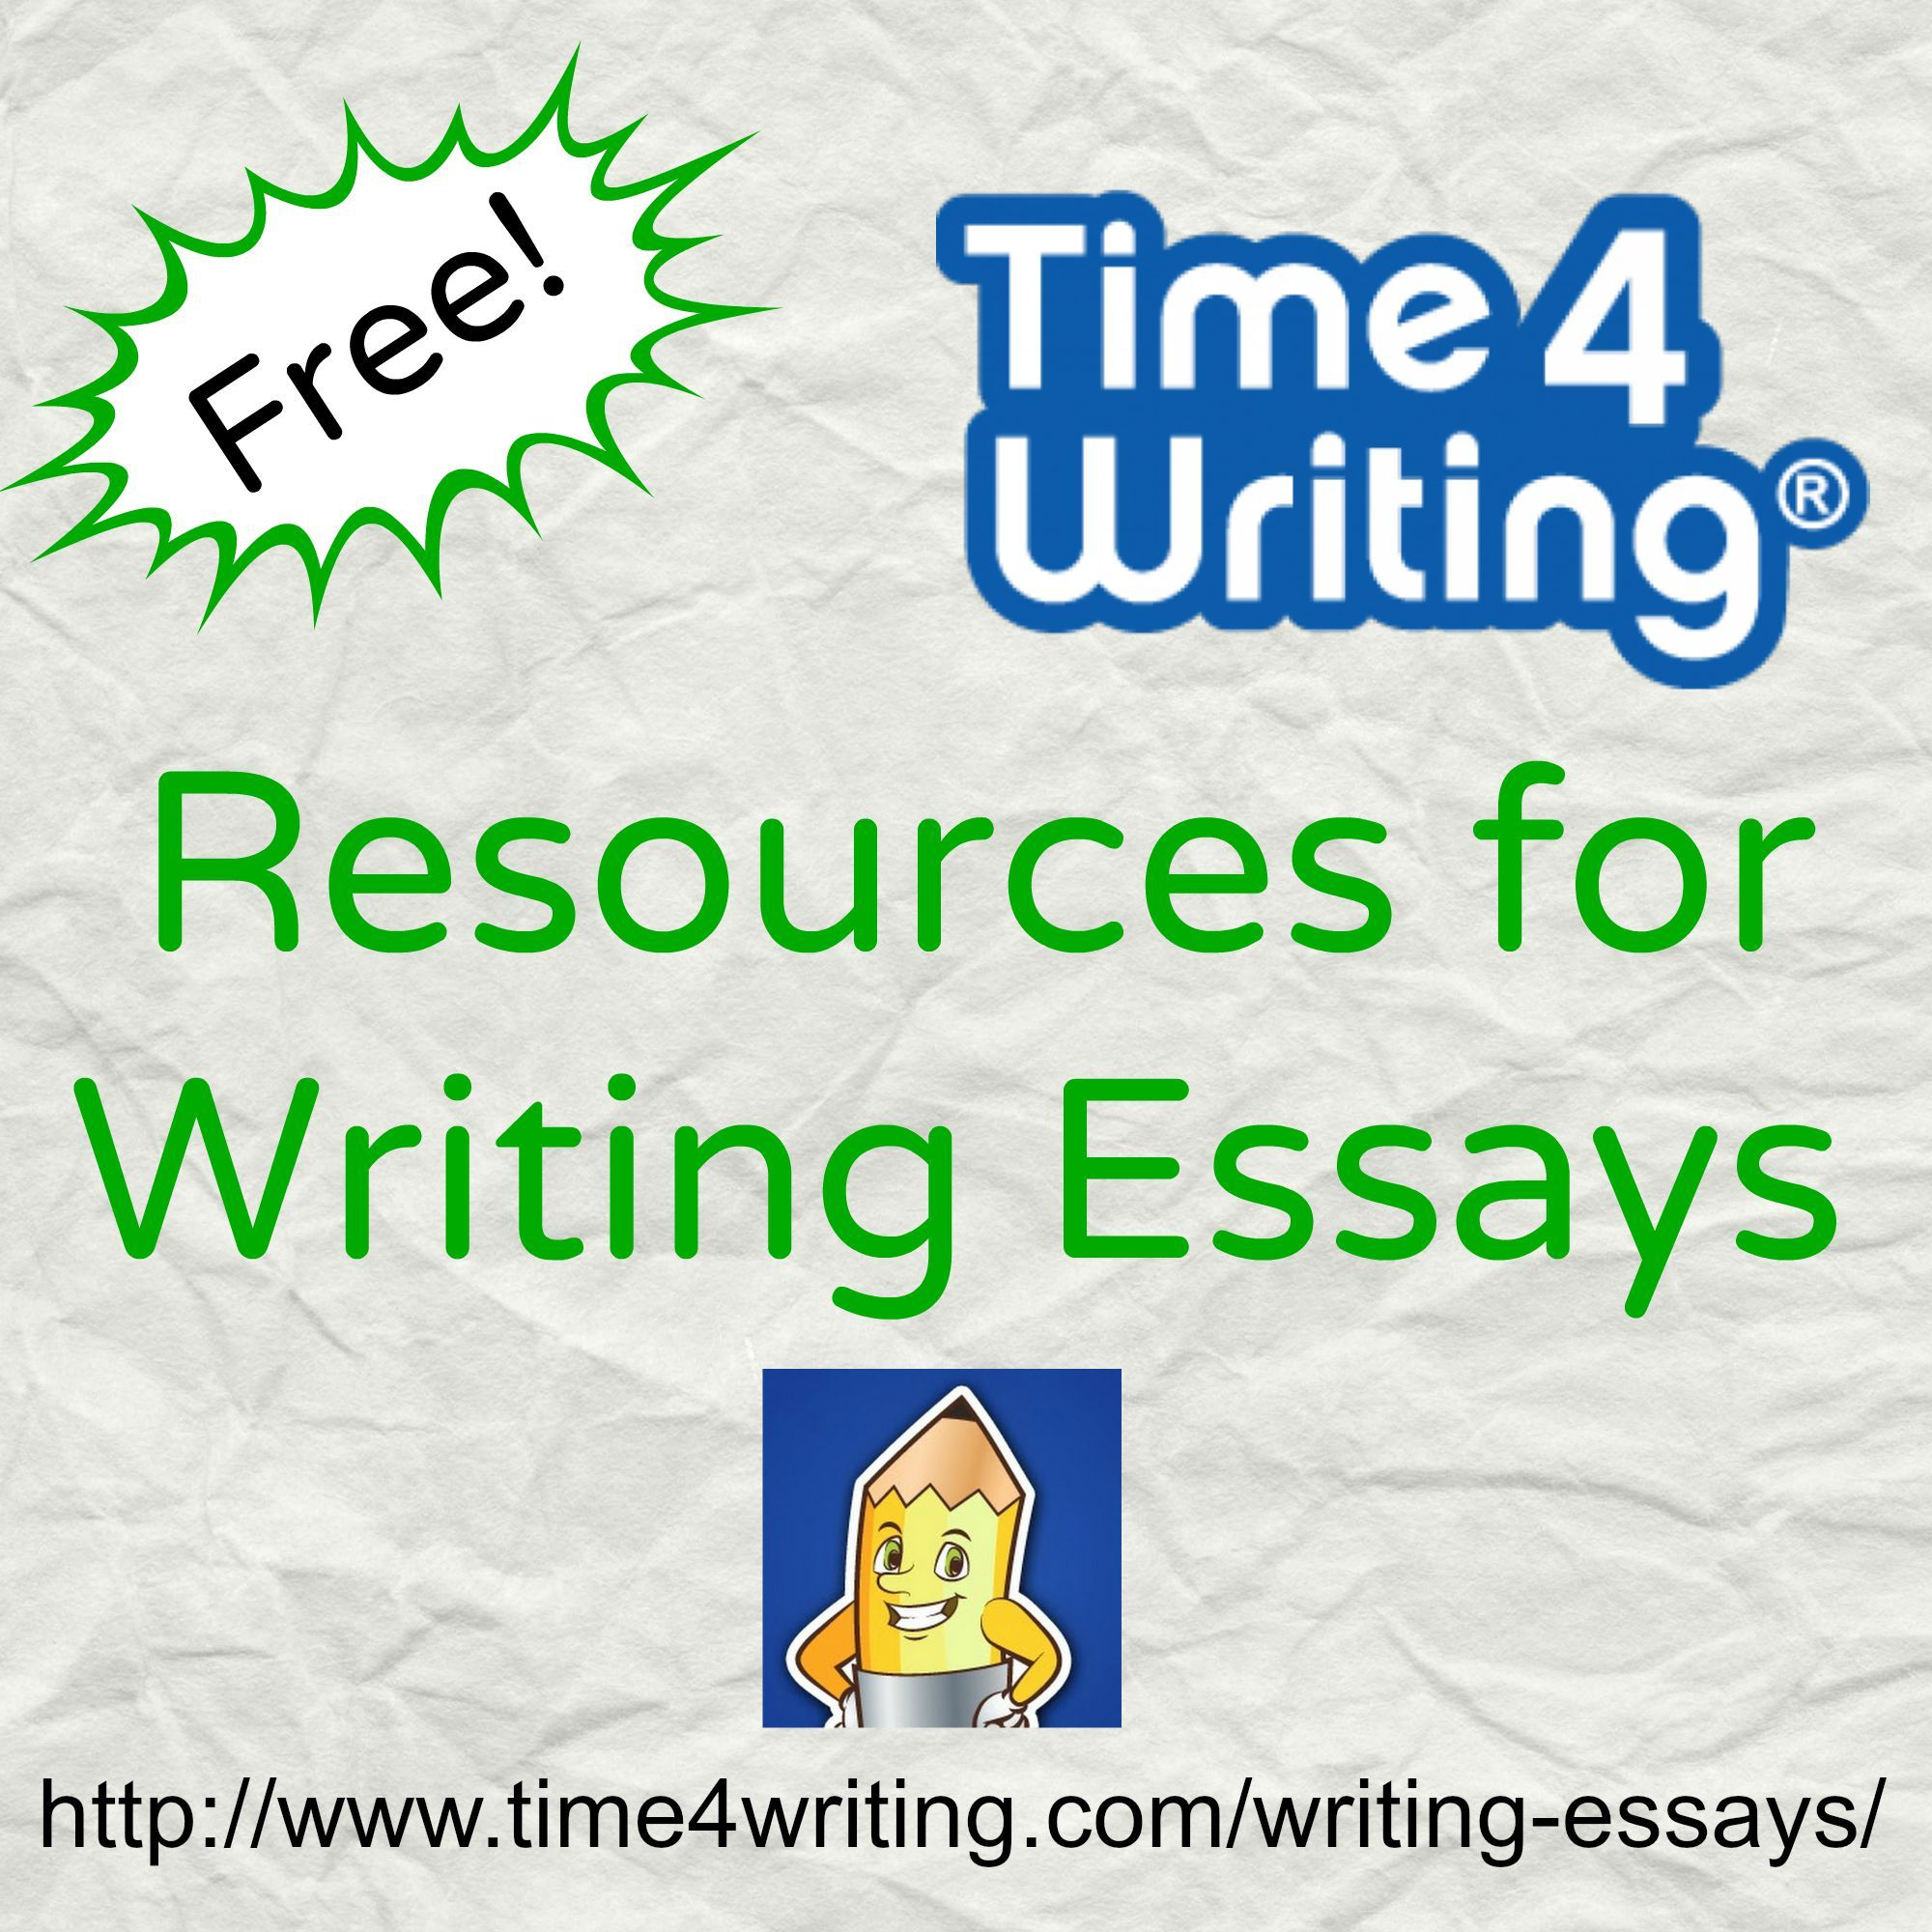 Resources for thesis and dissertation writing